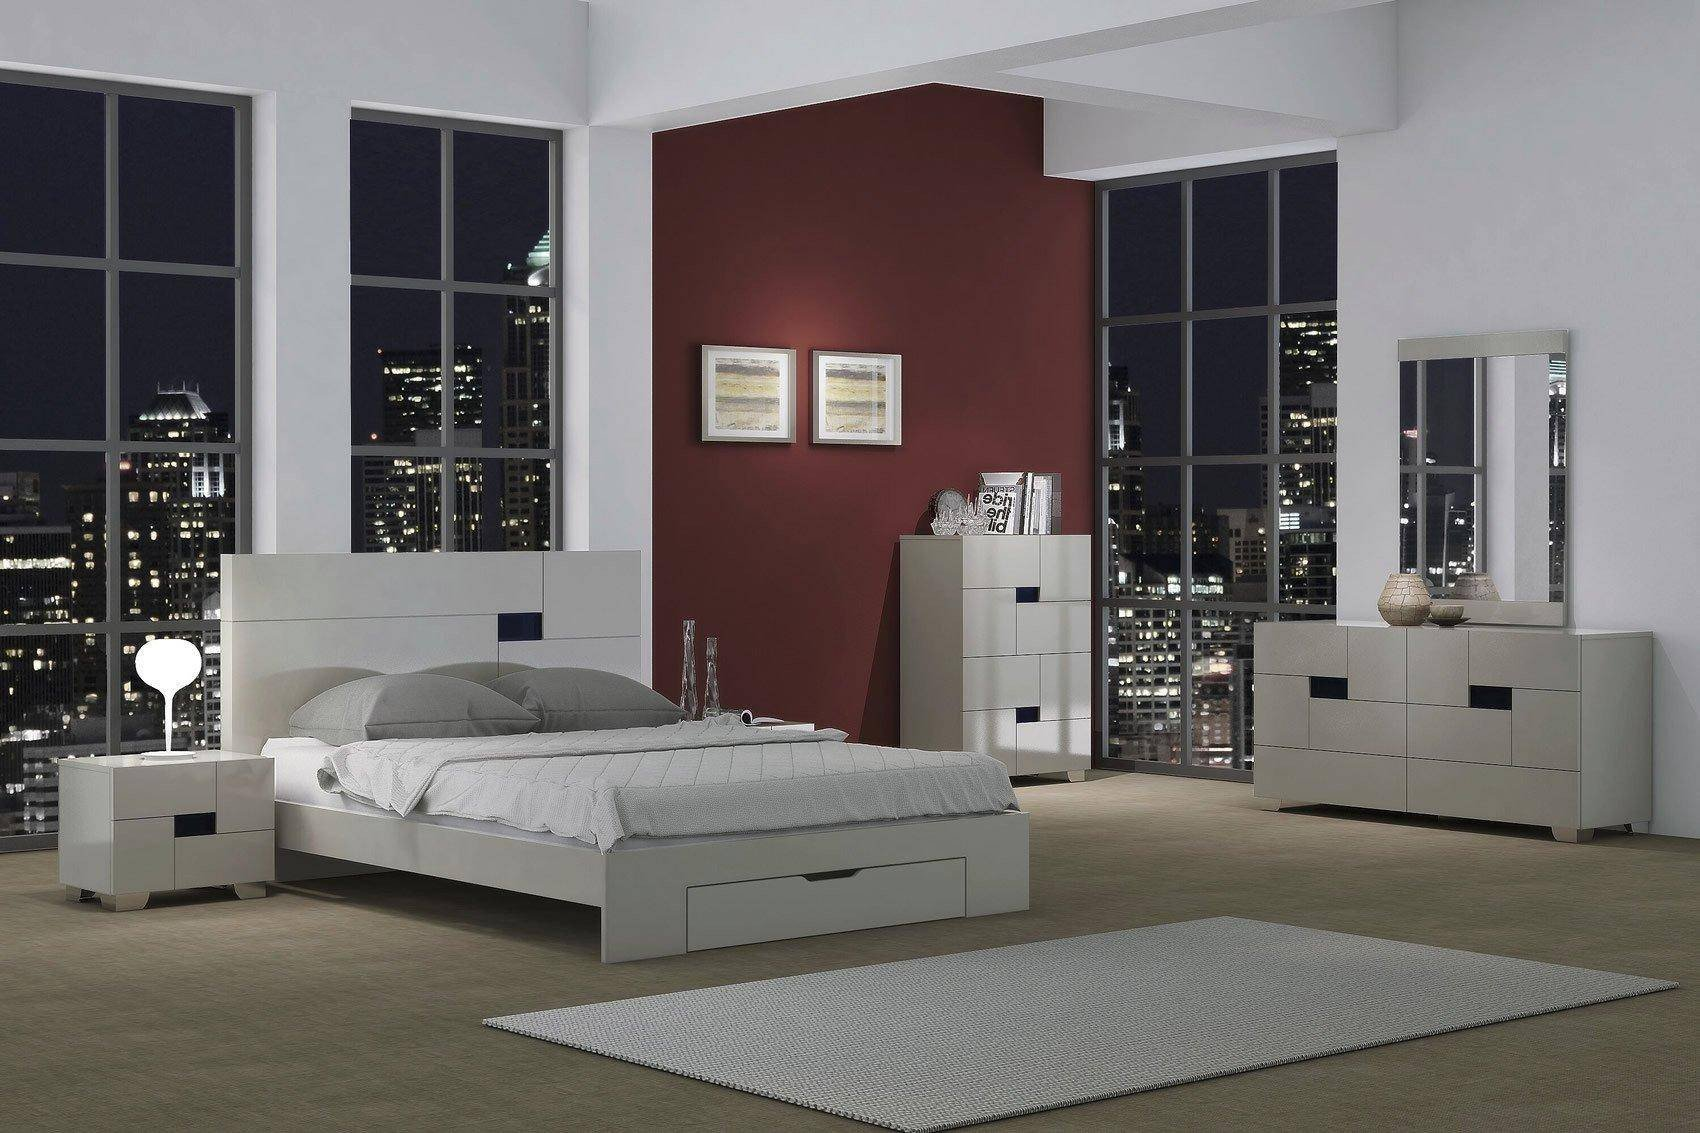 White Lacquer Bedroom Furniture New Contemporary Light Gray Lacquer Storage Queen Bedroom Set